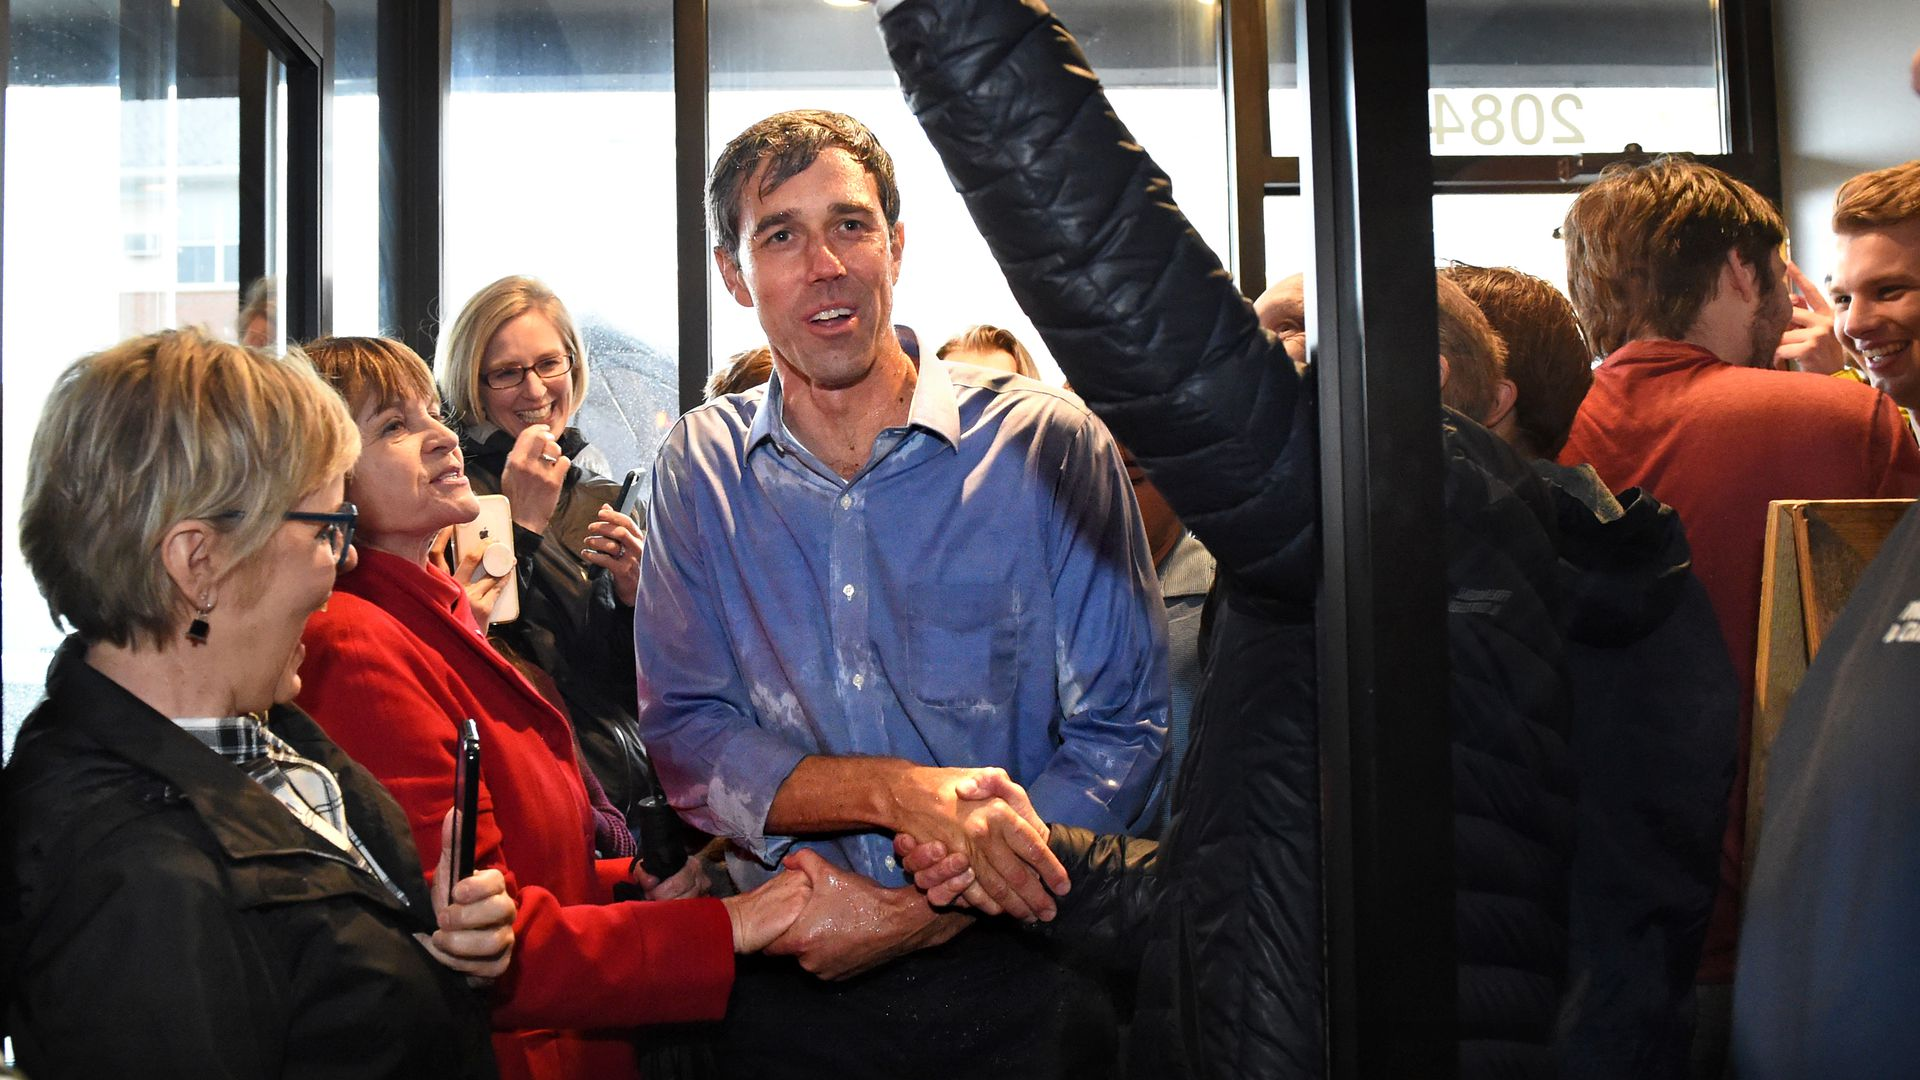 In this image, Beto stands soaked in rain and shaking multiple hands while walking through a door.